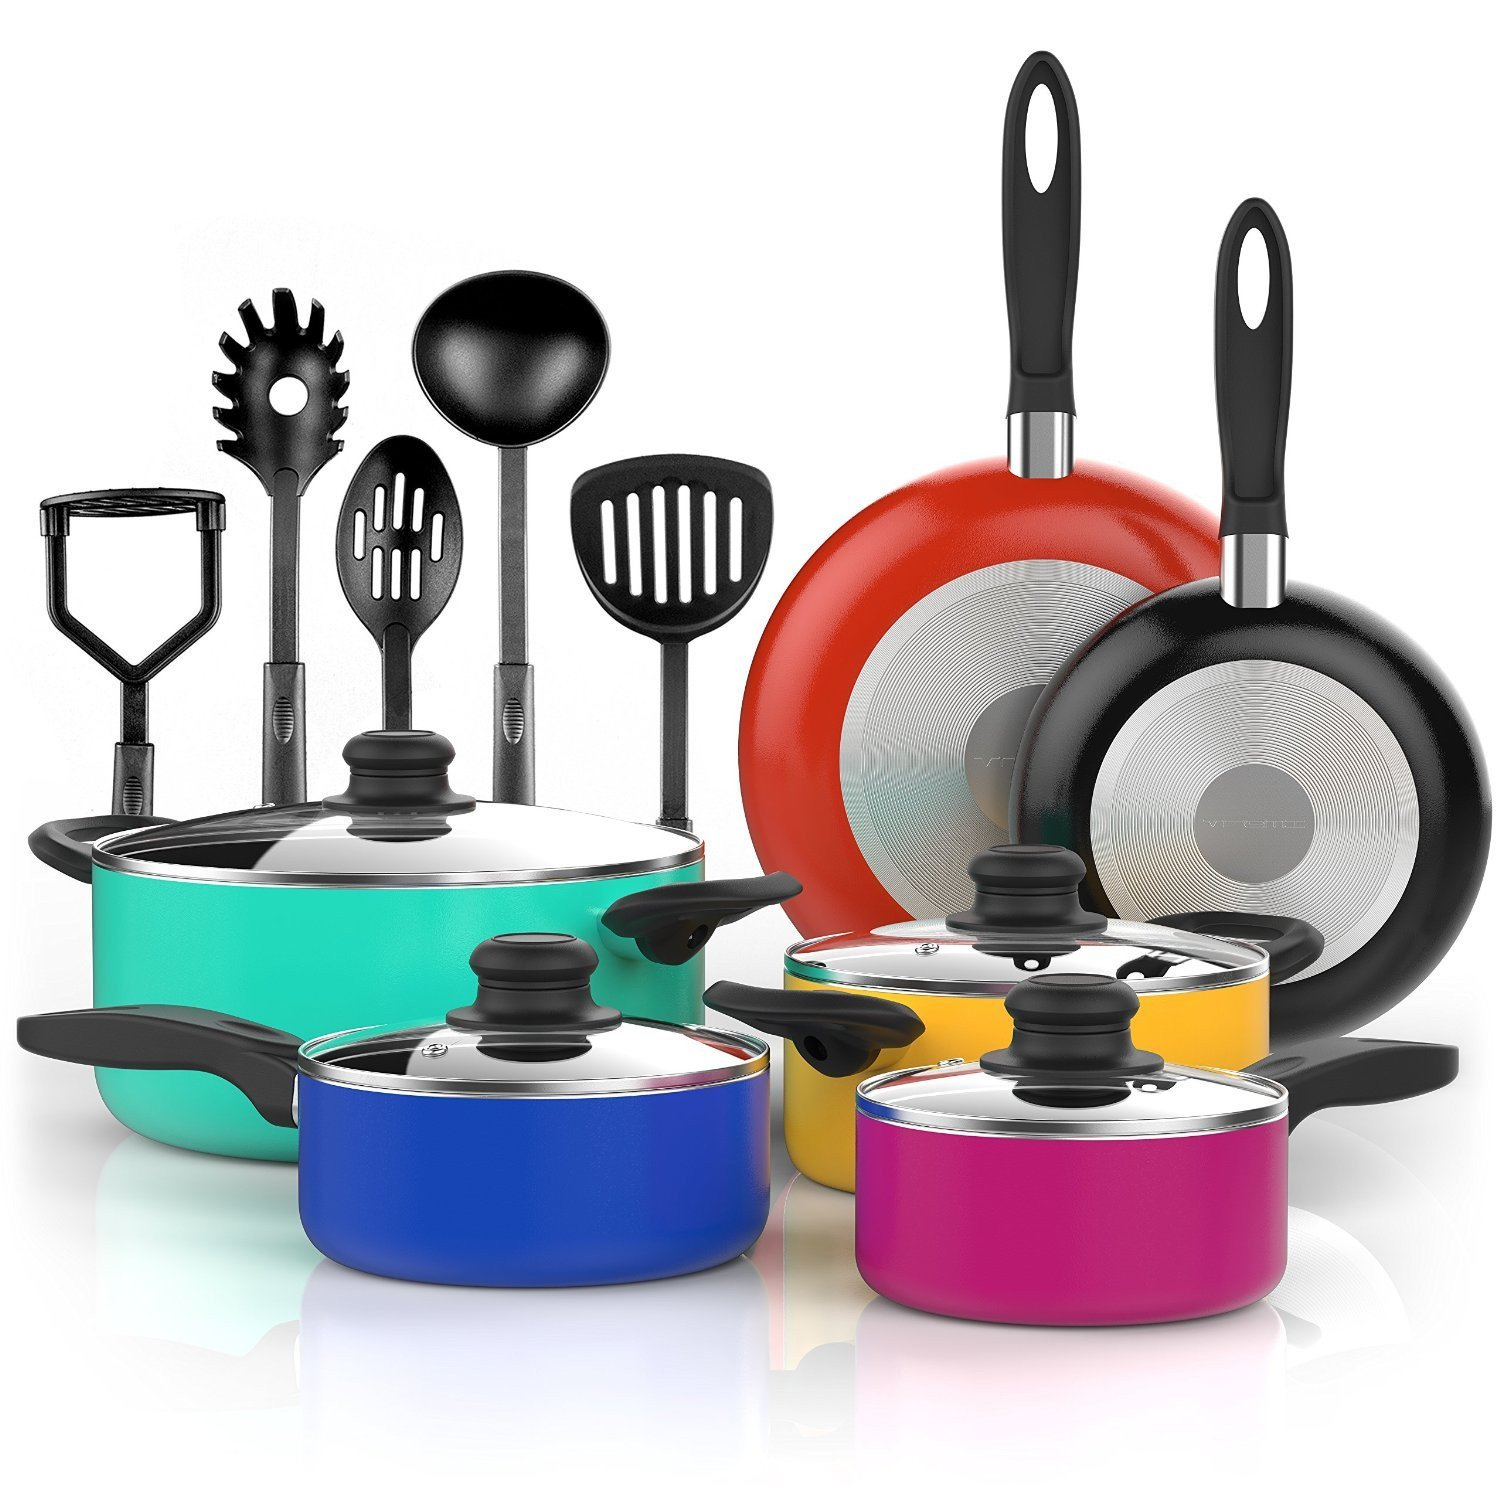 Top 10 Best Cookware